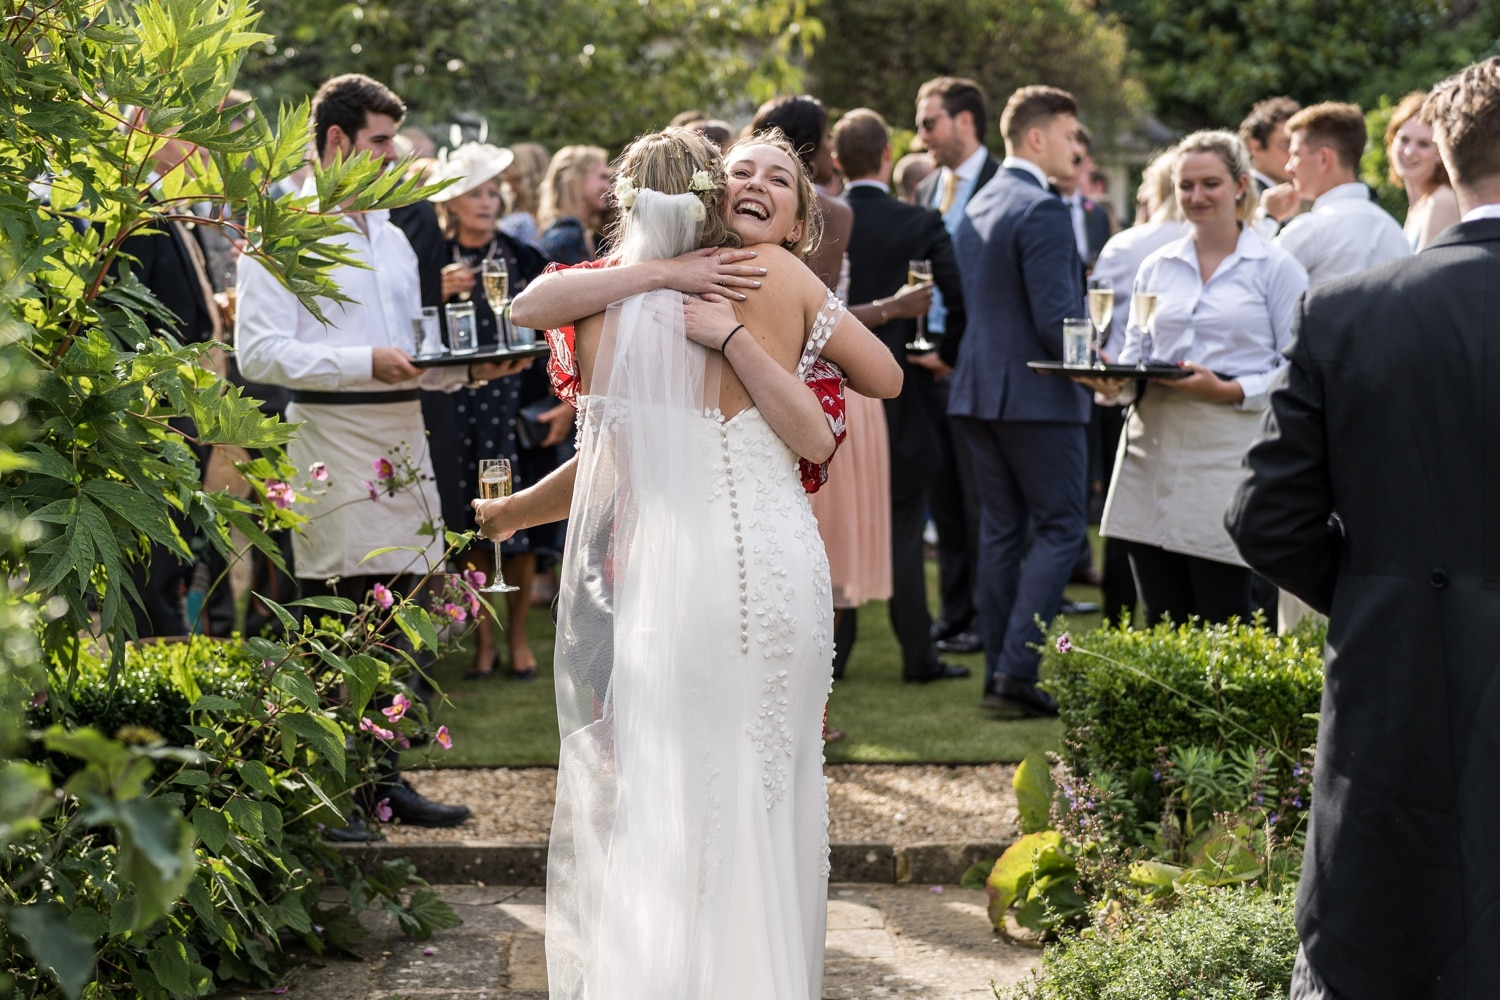 Cotswold wedding celebrations